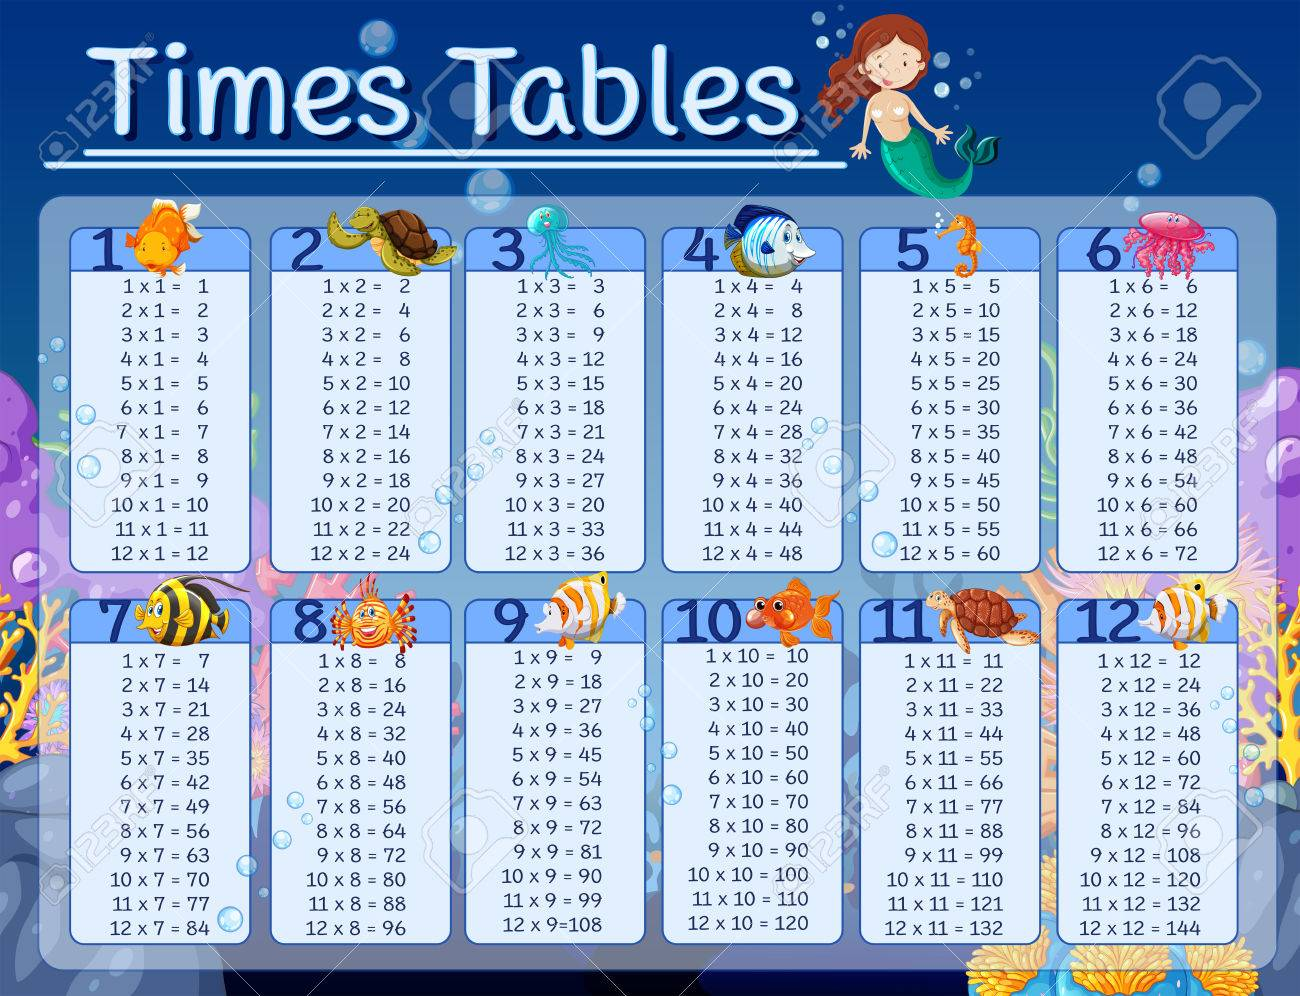 Times tables chart with underwater background illustration